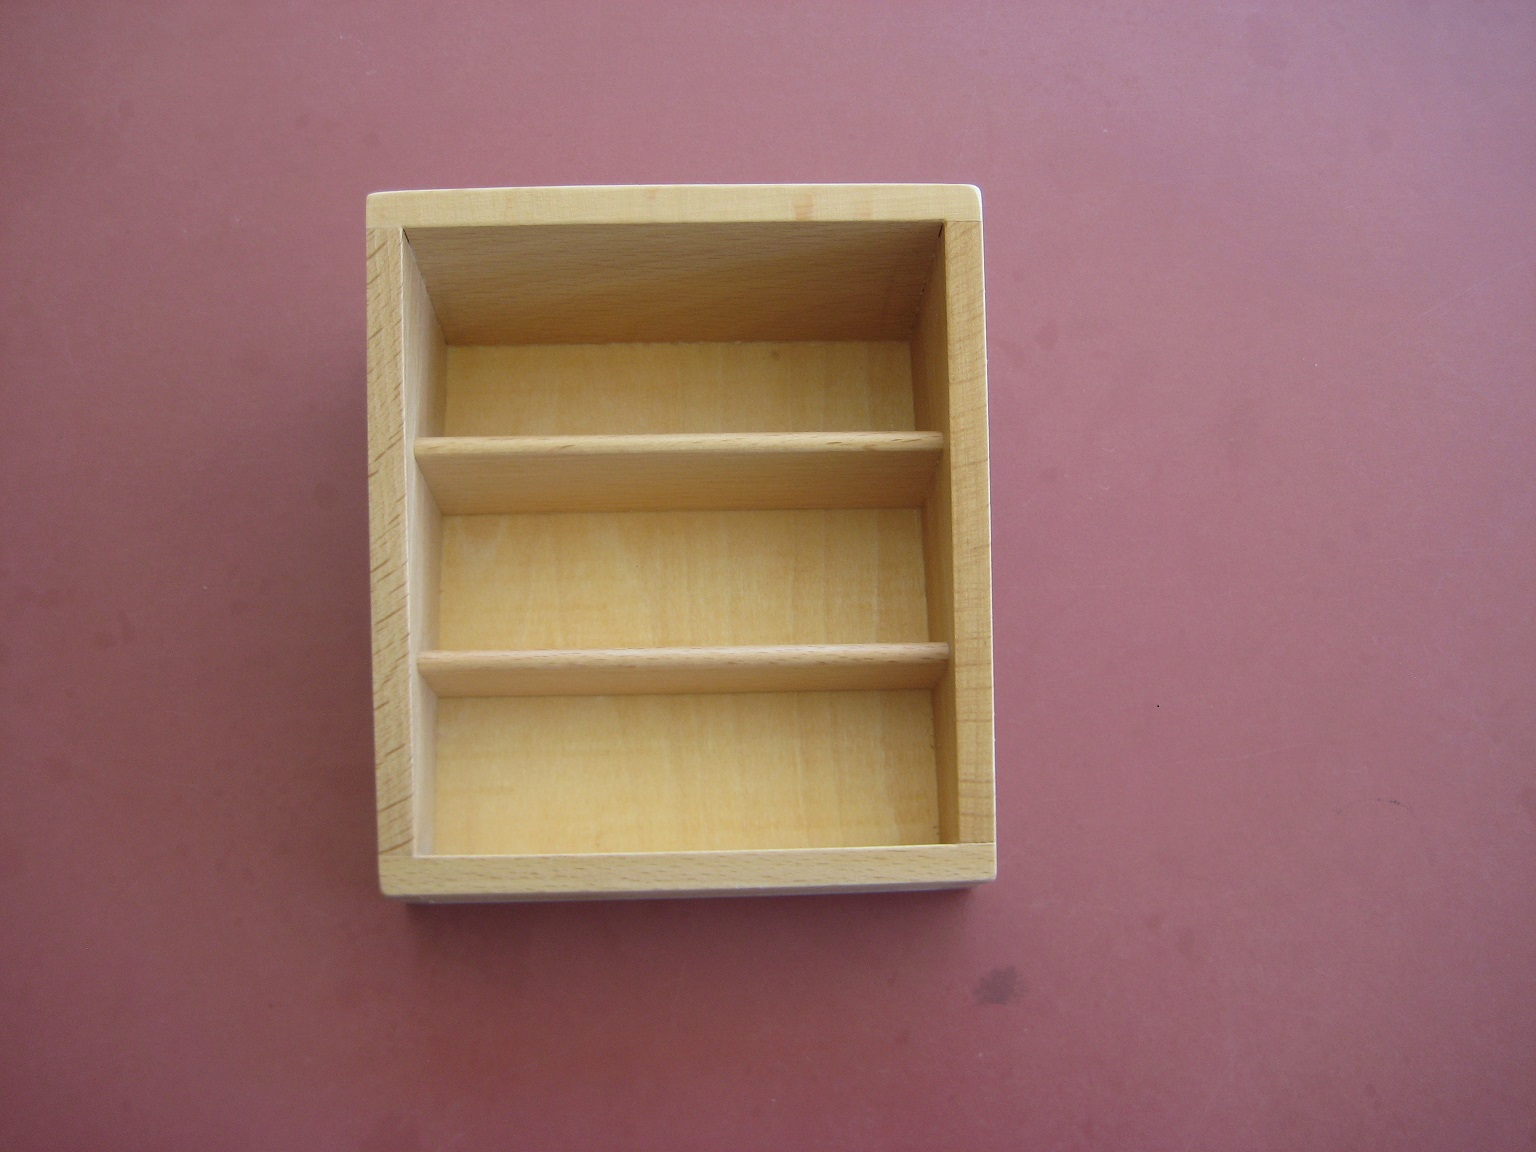 3-part-card-upright-tray.jpg